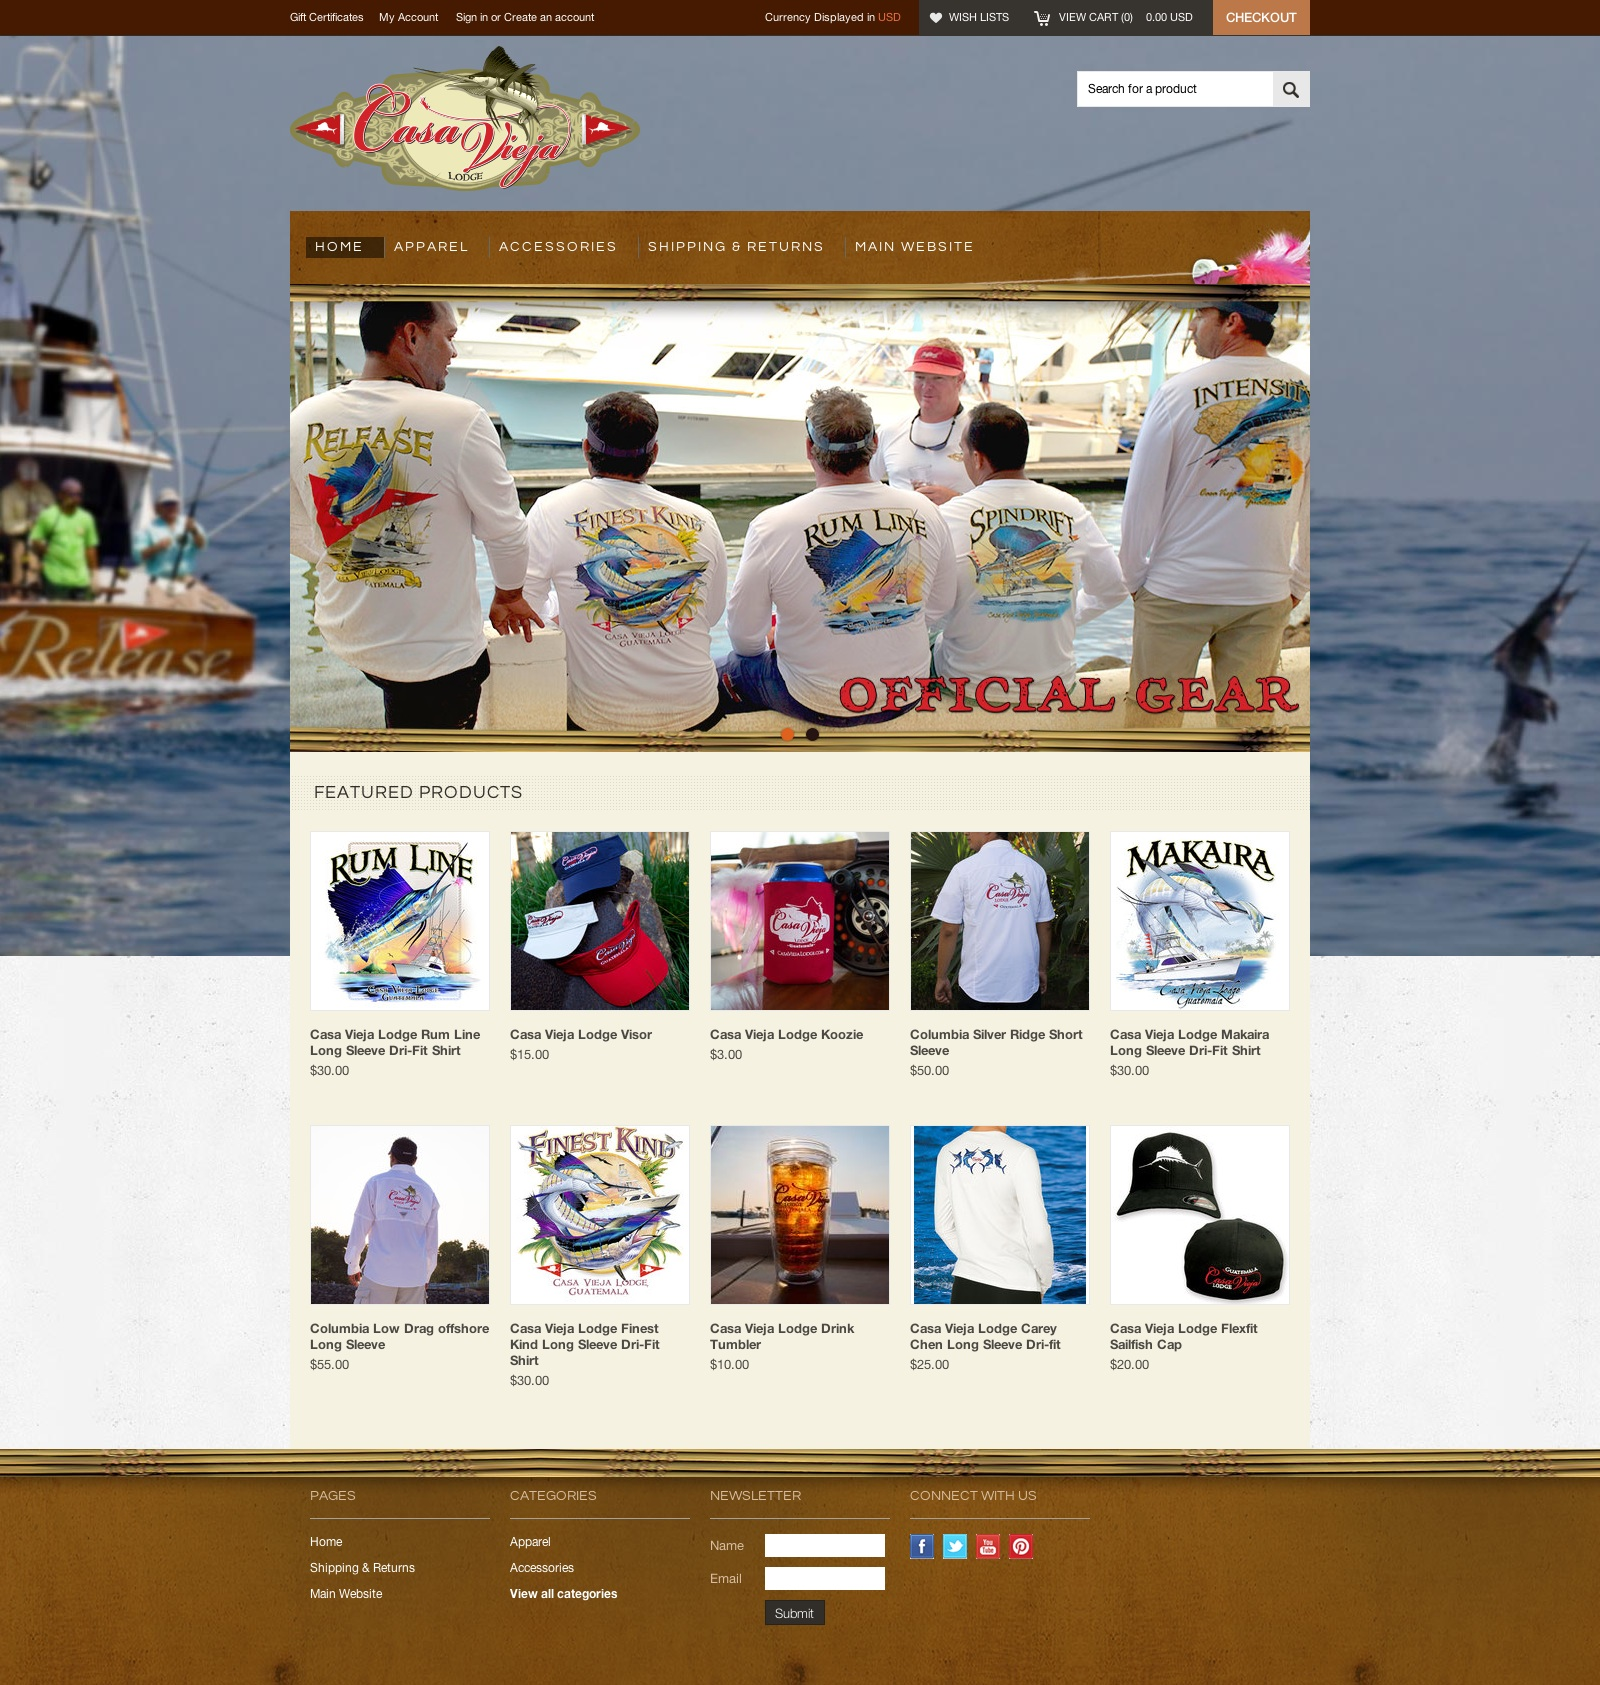 Casa vieja lodge online shop marine logos websites t for Shop on line casa